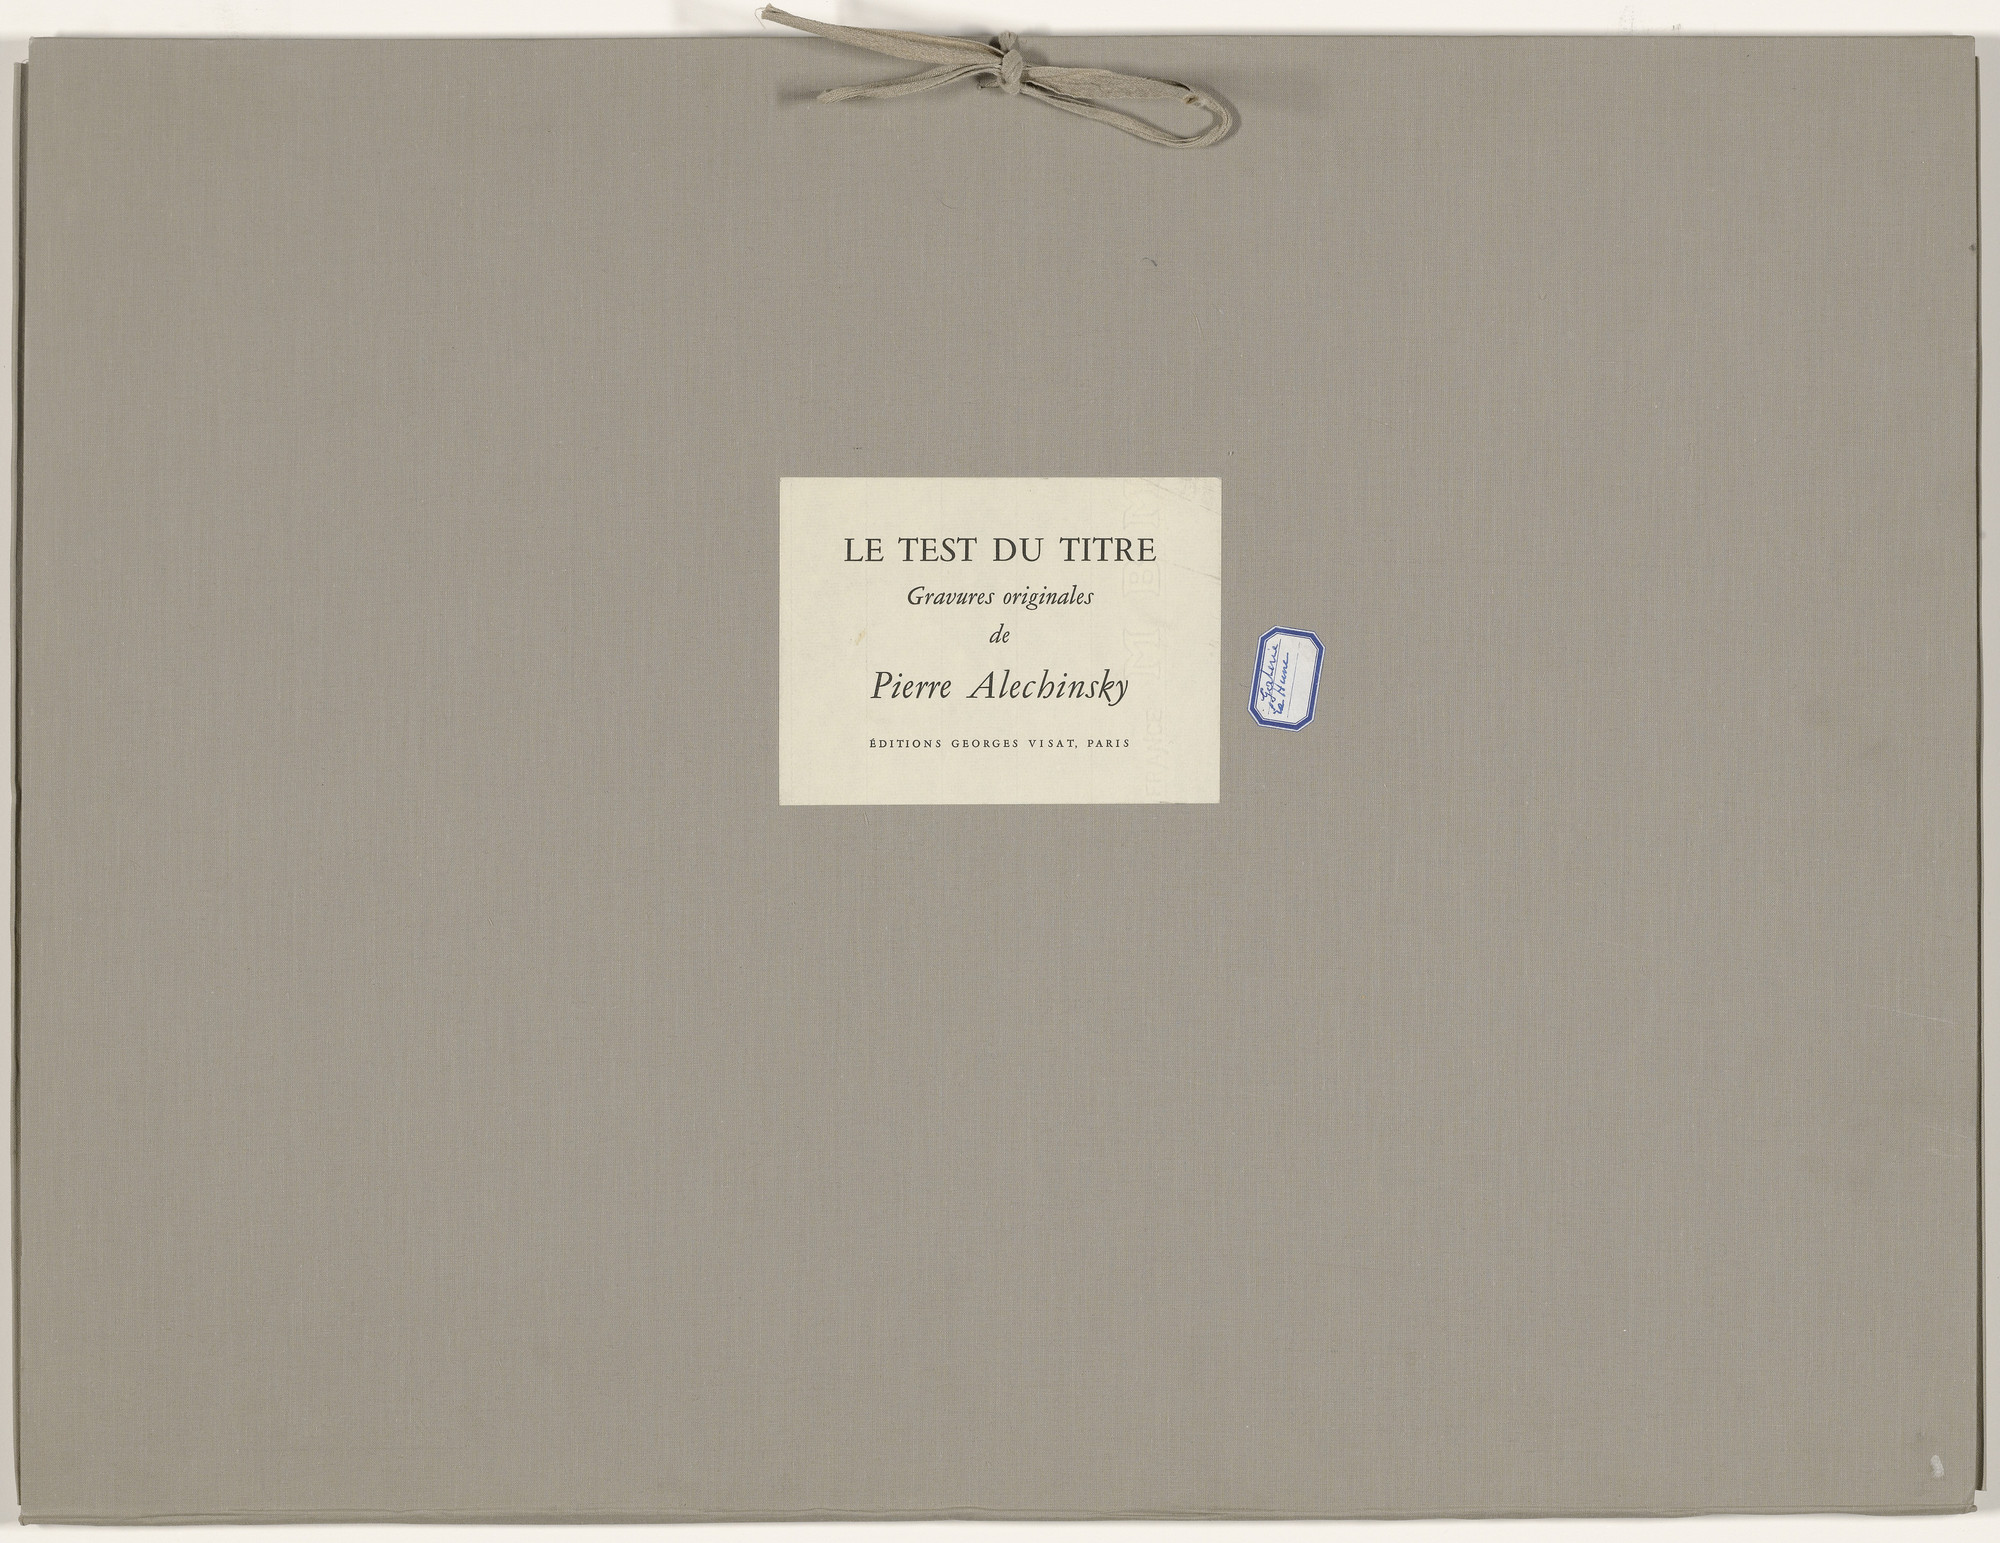 Pierre Alechinsky. The Test of the Title (Le Test du titre). 1966